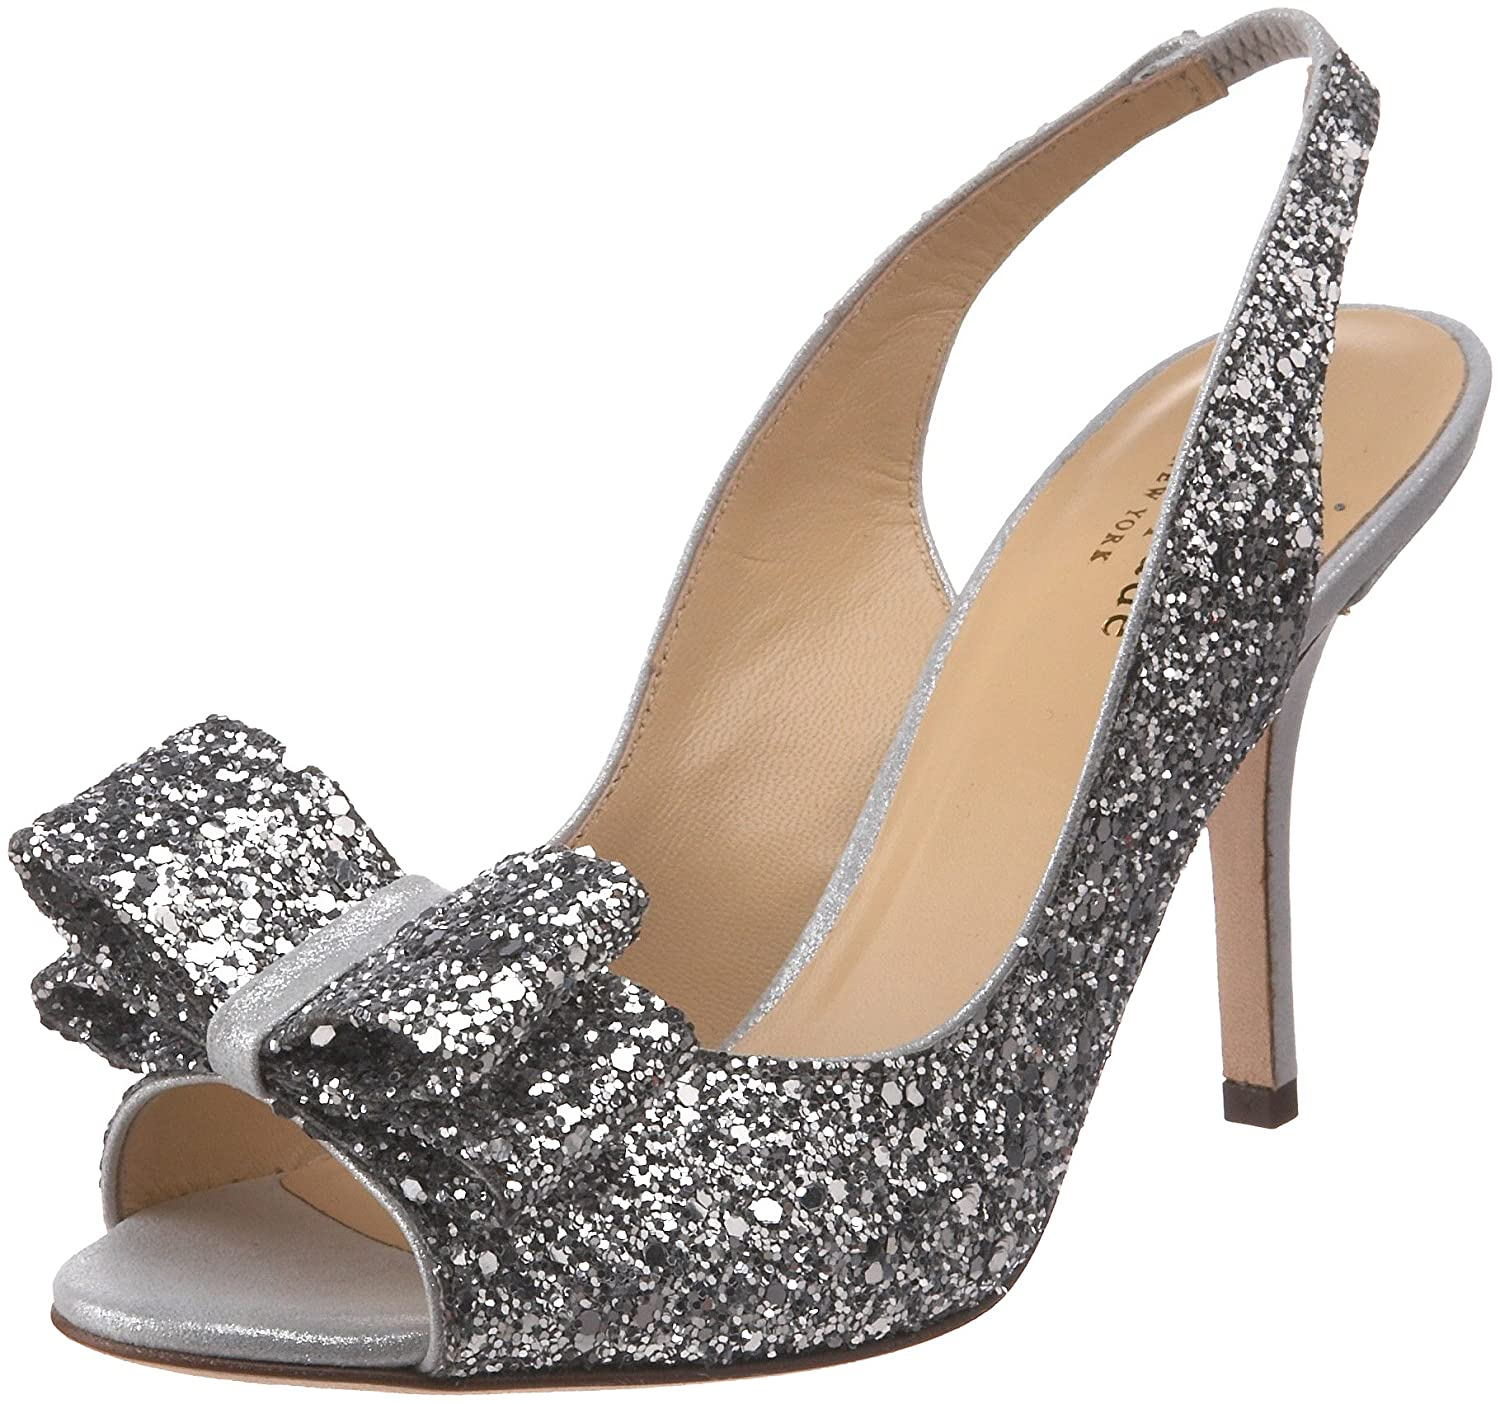 Women's Charming Silver Heel Glitter Bow Slingback Pump by Kate Spade New York - DeluxeAdultCostumes.com